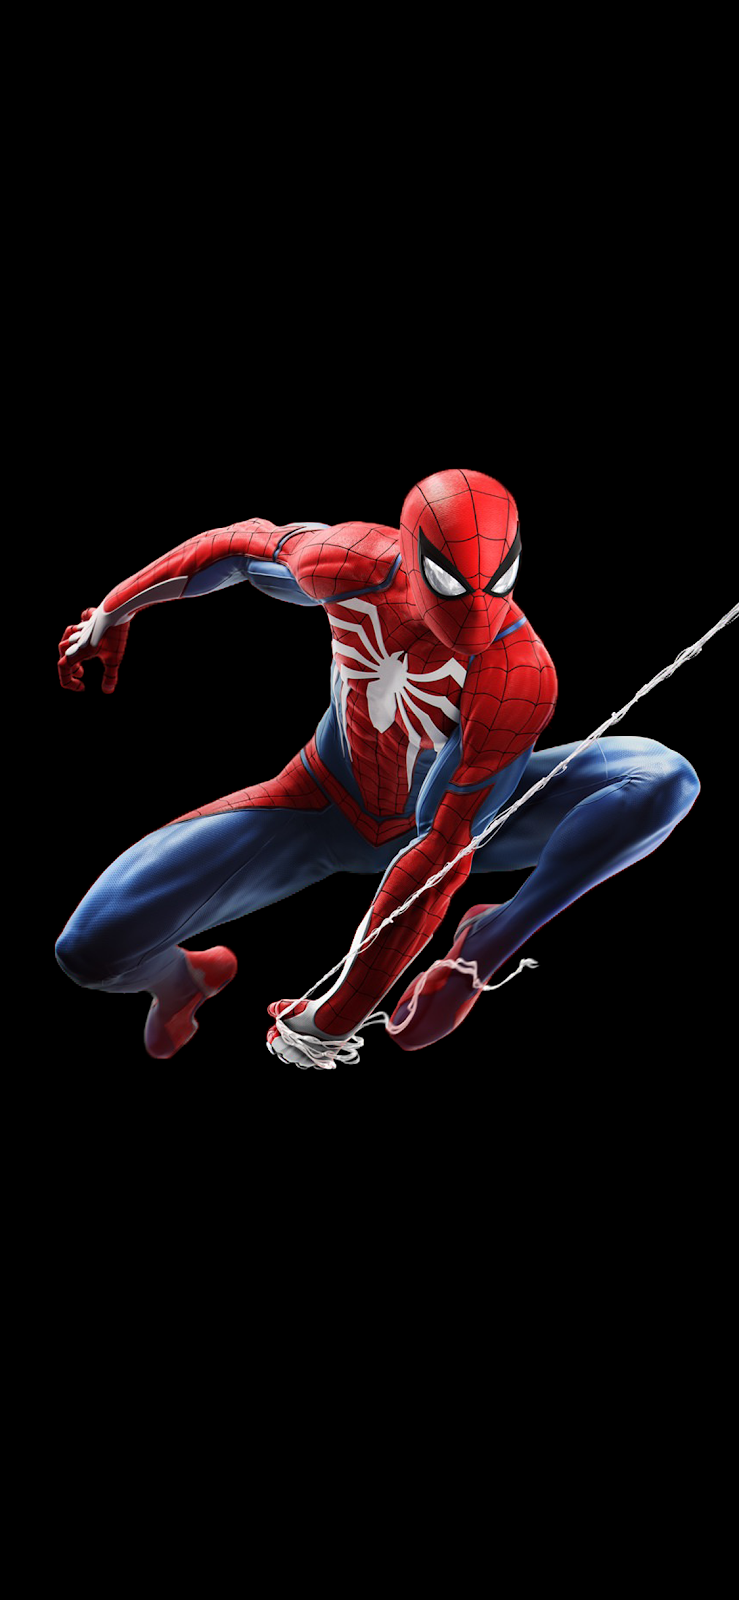 Spider-Man V2 [iPhone X] (saving battery for Amoled display)